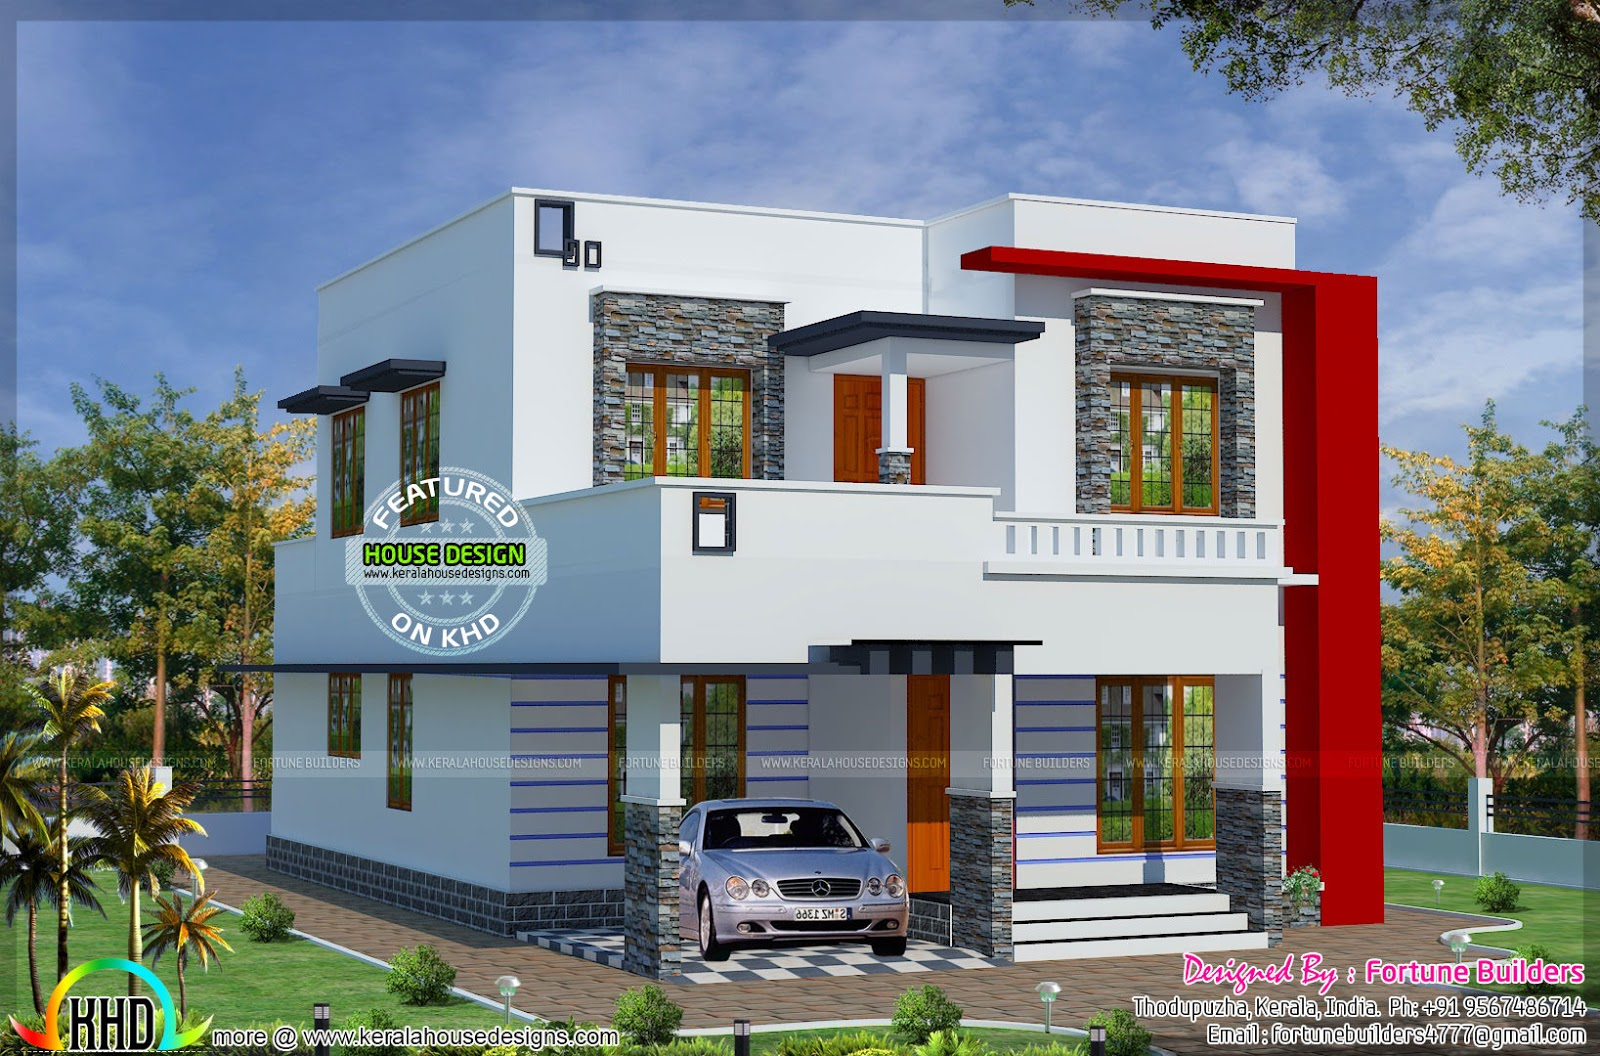 1690 sq ft low budget modern home kerala home design and floor plans Home design and budget